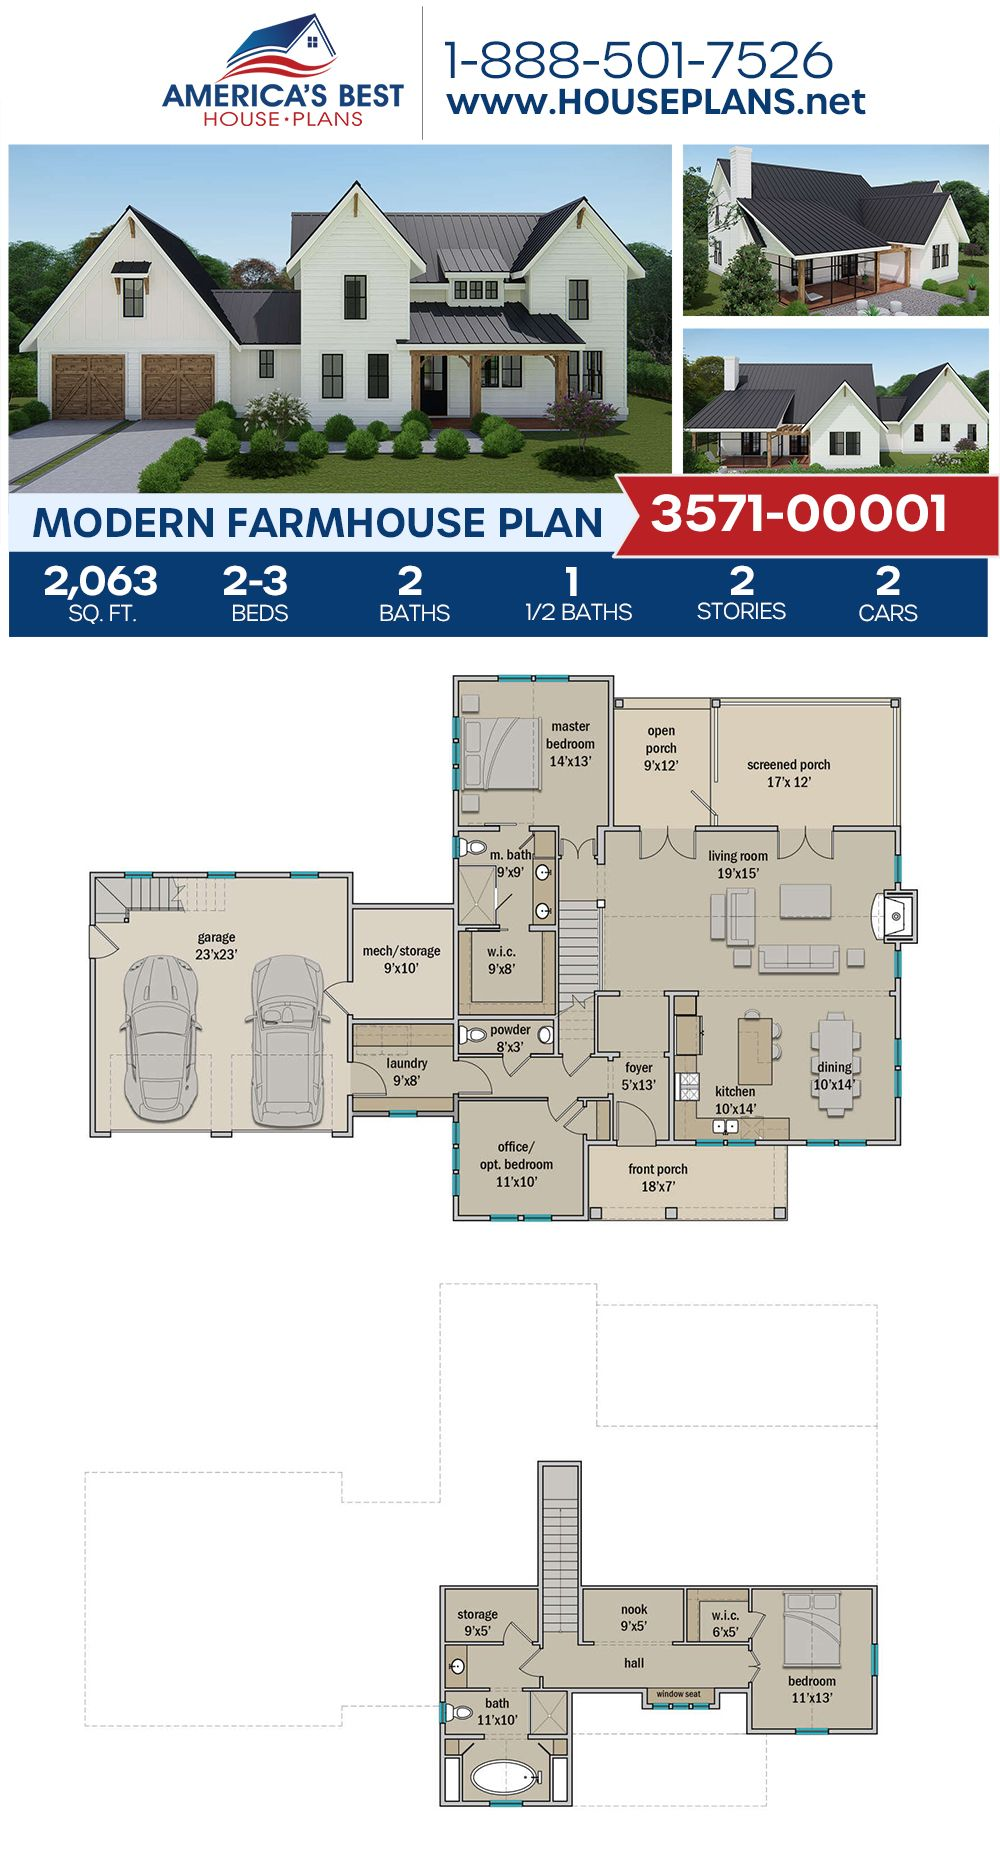 House Plan 3571 00001 Modern Farmhouse Plan 2 063 Square Feet 2 3 Bedrooms 2 5 Bathrooms House Plans Farmhouse Modern Farmhouse Plans Farmhouse Plans